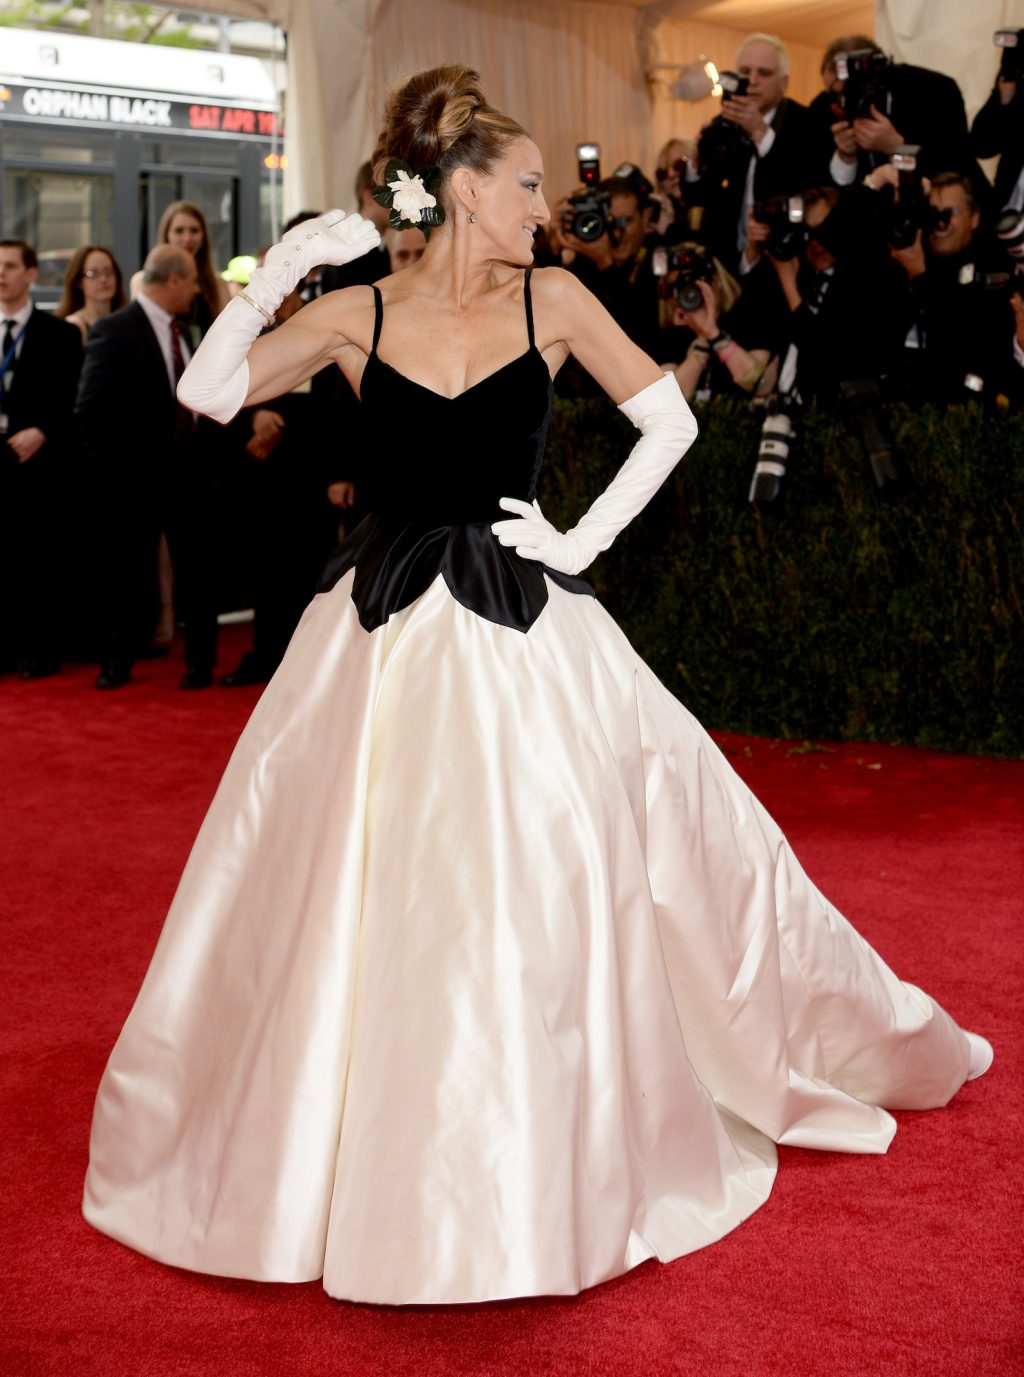 SJP Style: A Look Back at the Birthday Girl's Best Red Carpet Looks